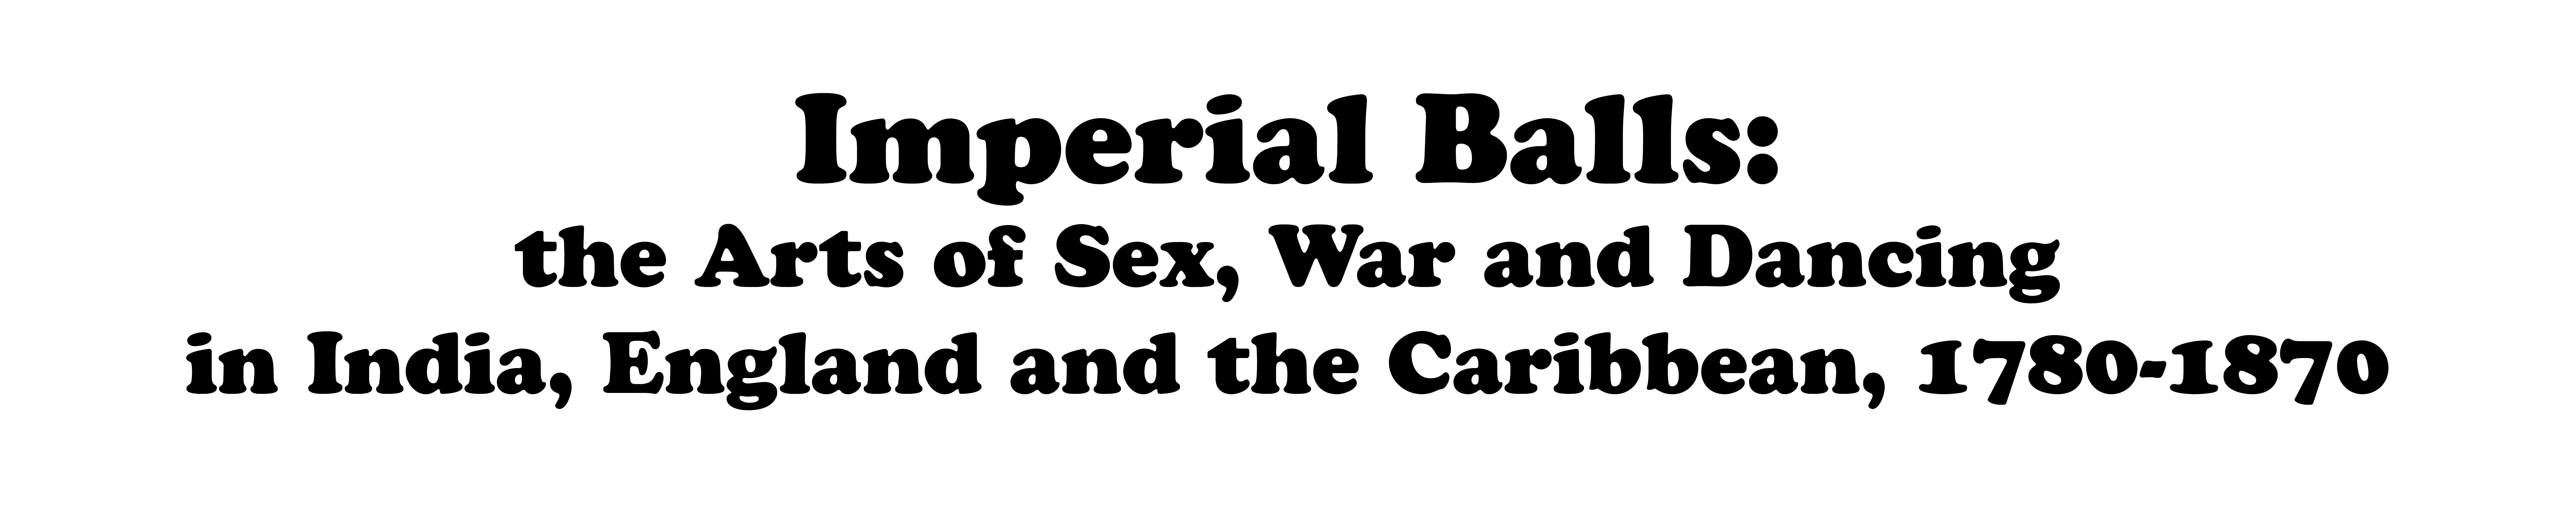 Imperial Balls